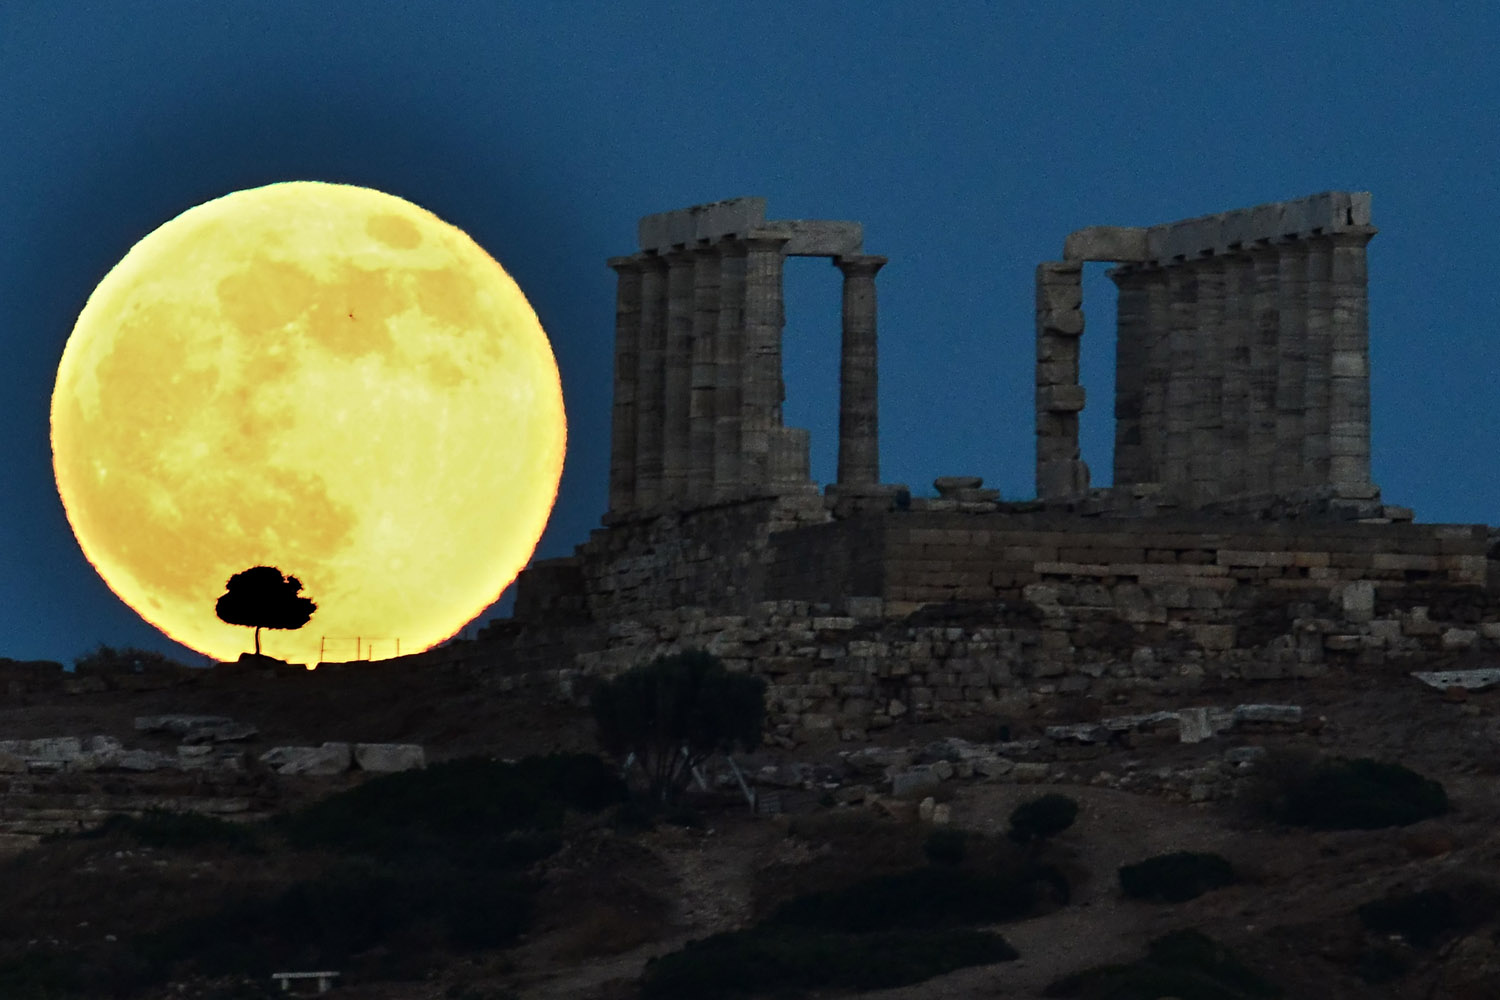 June 23, 2013. A supermoon rises next to the ancient Greek temple of Poseidon at Cape Sounion, some 65 kilometers south of Athens.